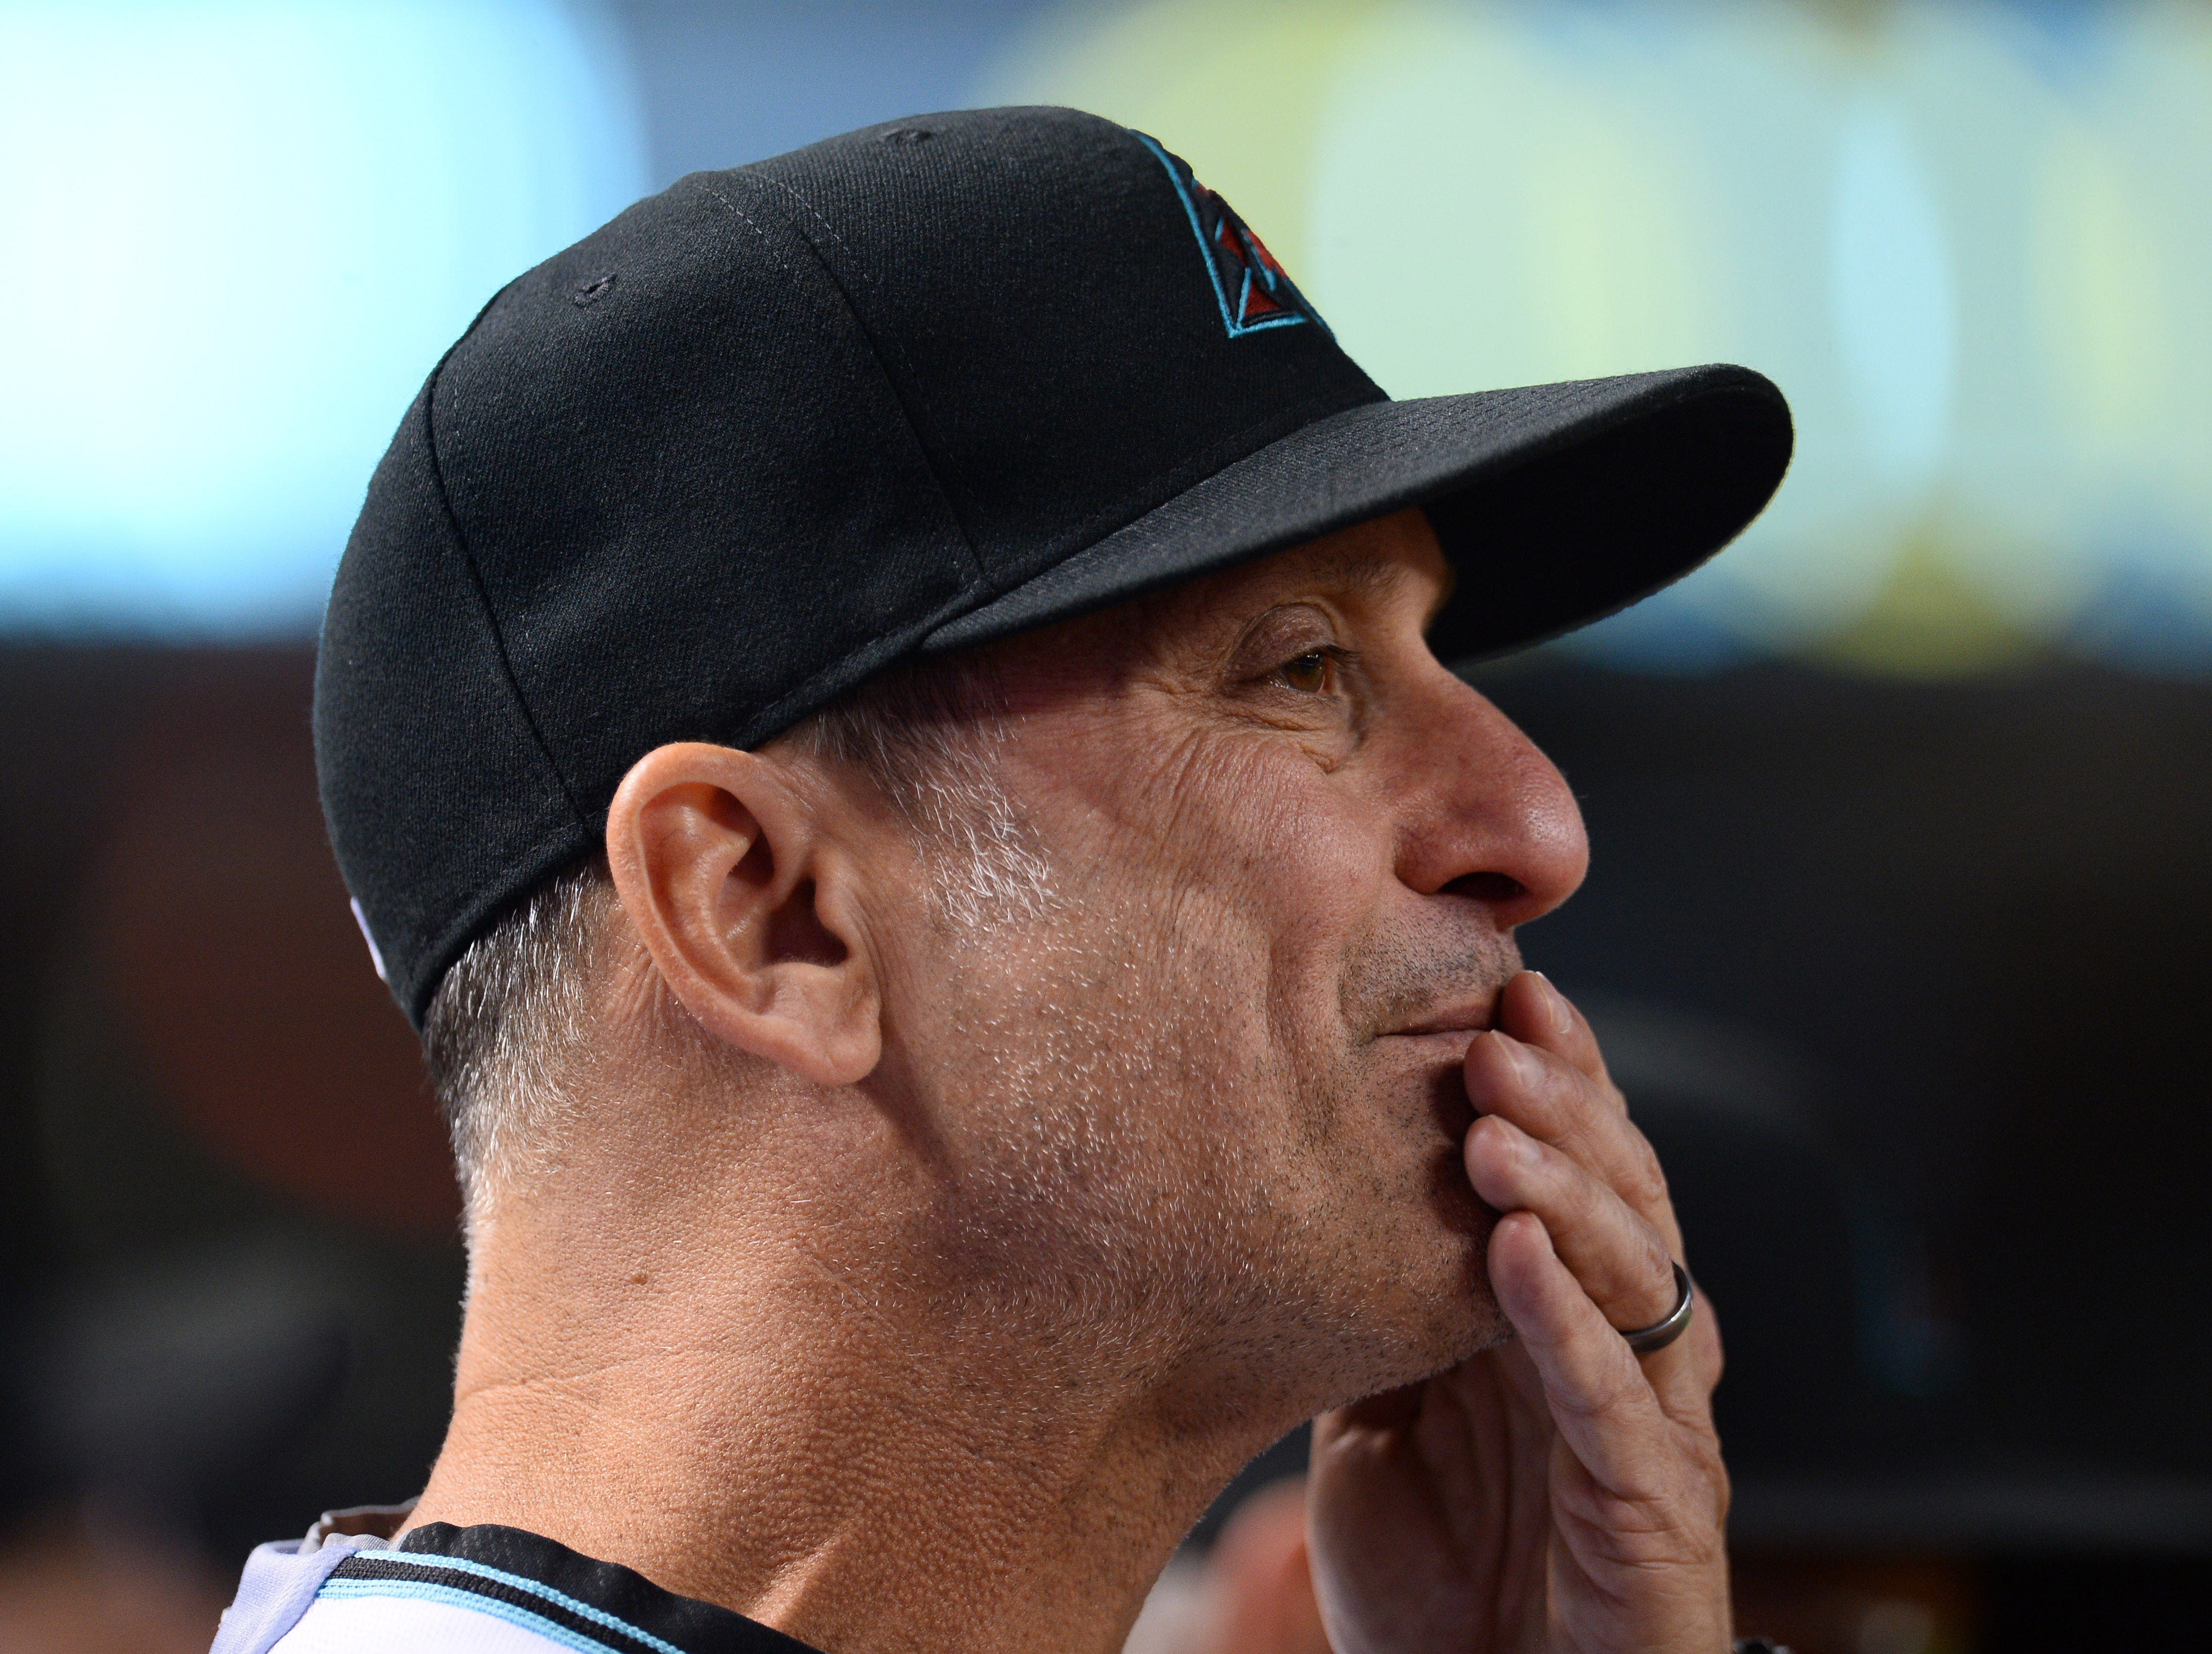 Apr 9, 2019; Phoenix, AZ, USA; Arizona Diamondbacks manager Torey Lovullo (17) looks on during the eighth inning against the Texas Rangers at Chase Field. Mandatory Credit: Joe Camporeale-USA TODAY Sports